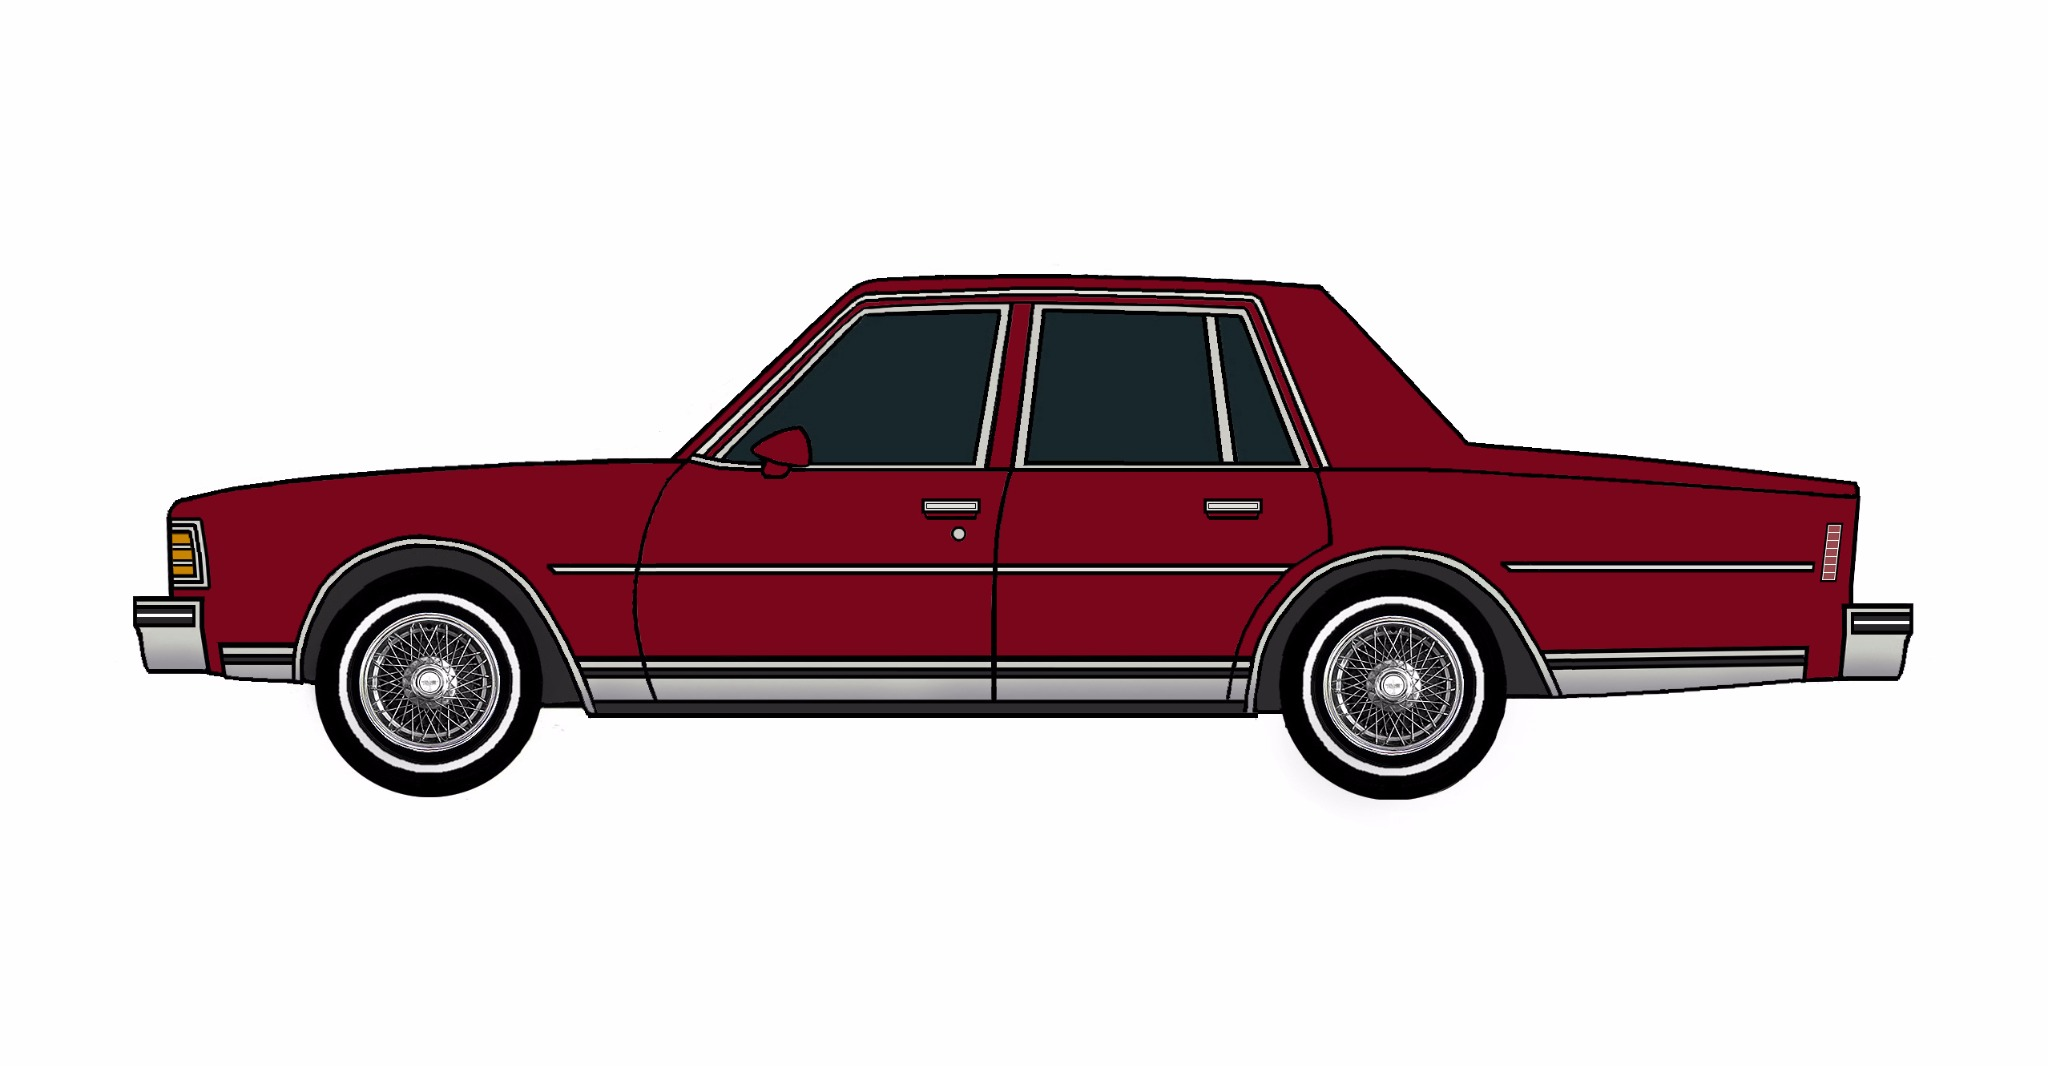 1979 Chevy Caprice DEEP BURGUNDY